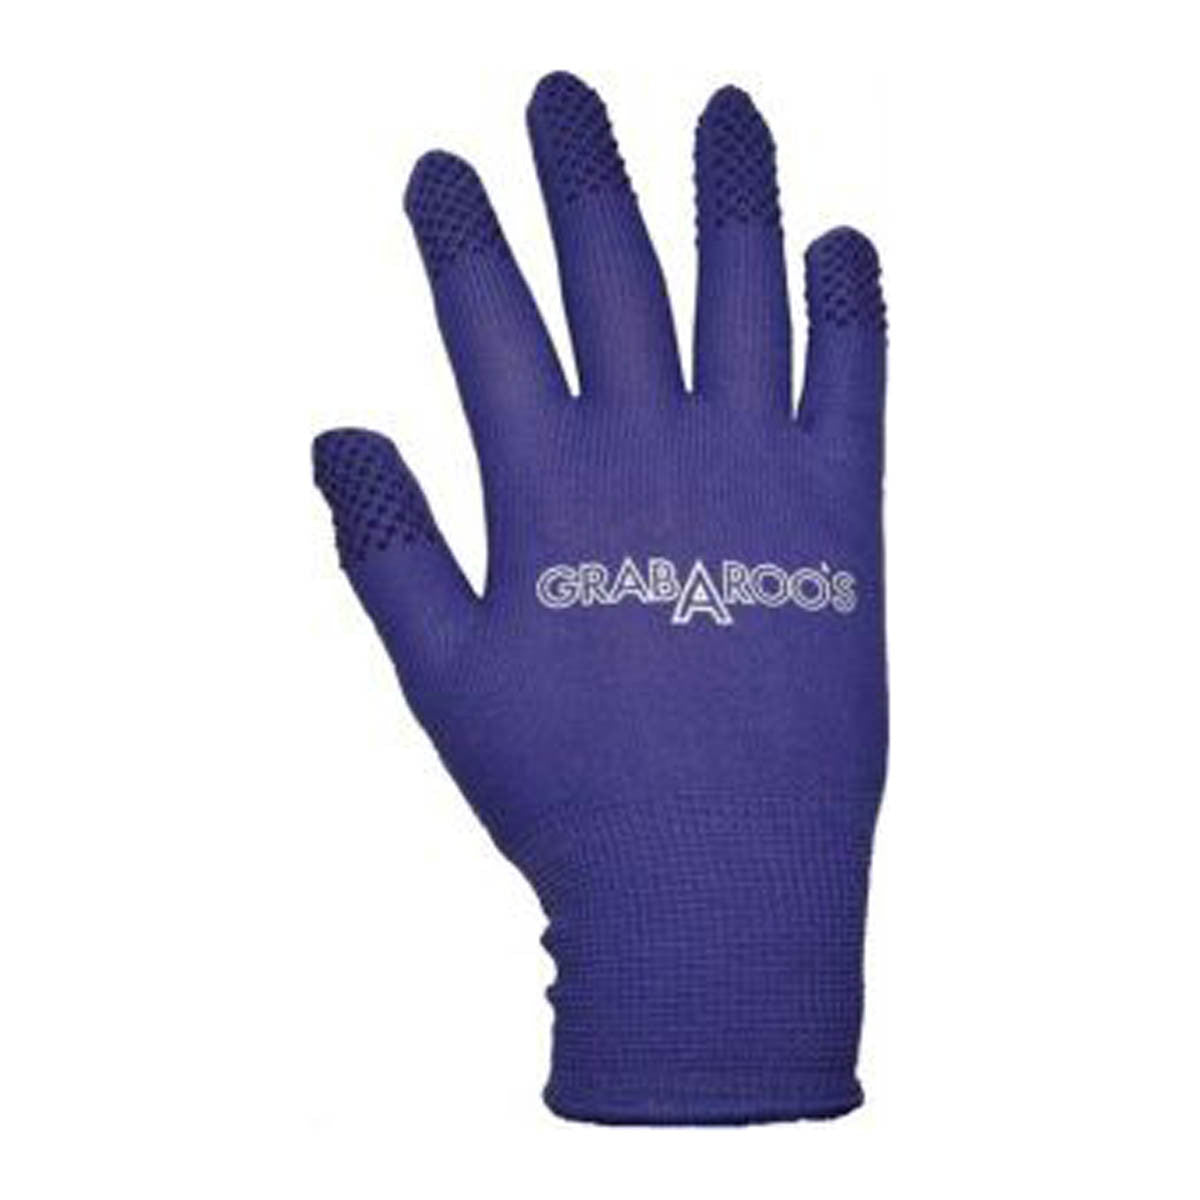 GRABAROOS GLOVES - Quilting, Sewing, Scrapbooking, Crafting